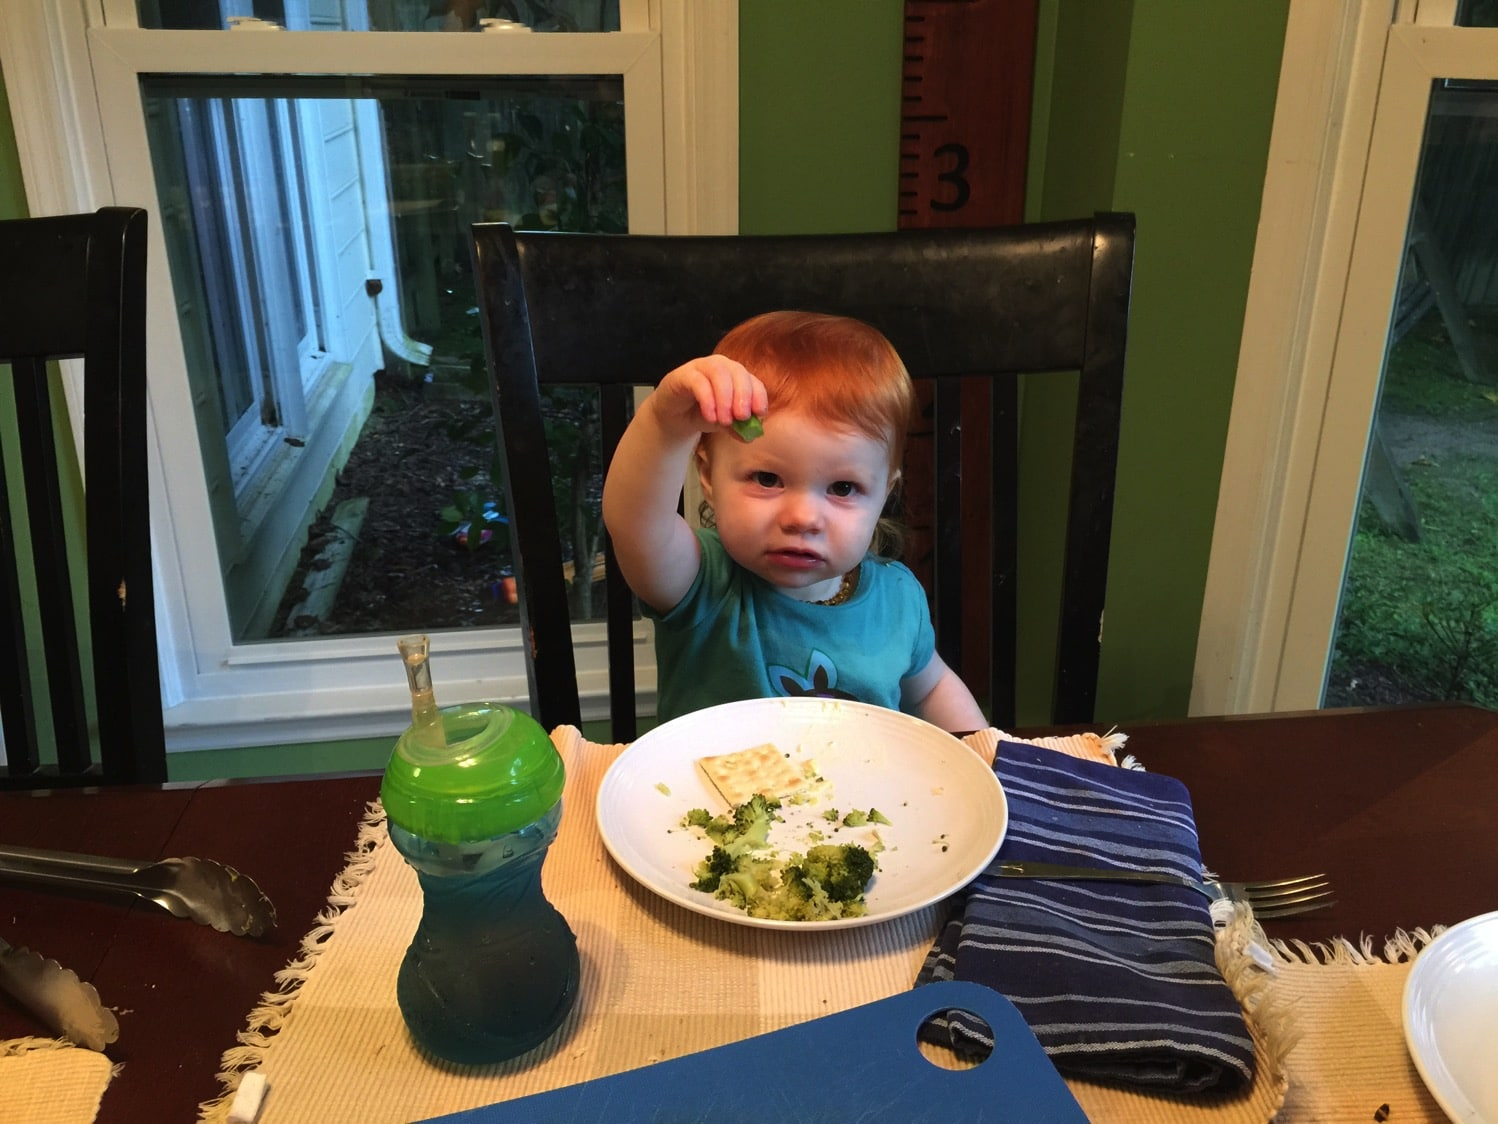 B eating broccoli and devouring it